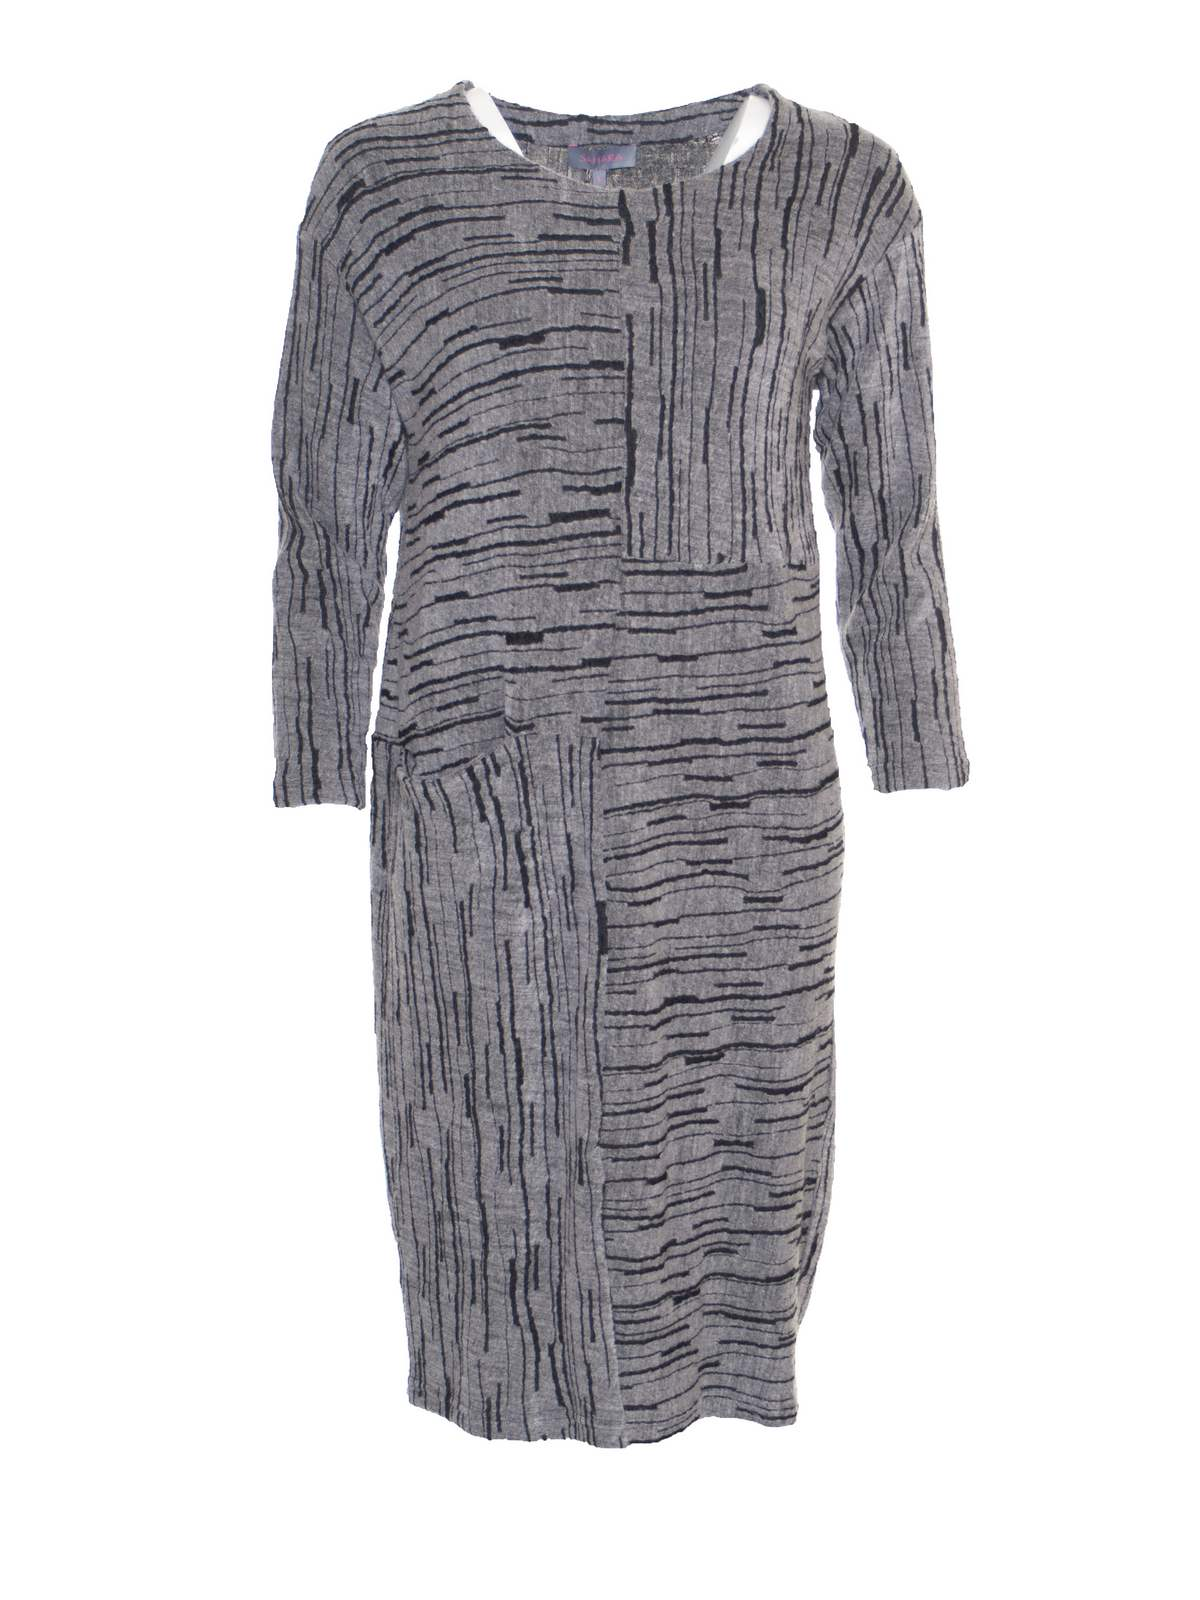 c70dae48ea Silver Birch Dress Grey - Katie Kerr - Women s Clothing - UK